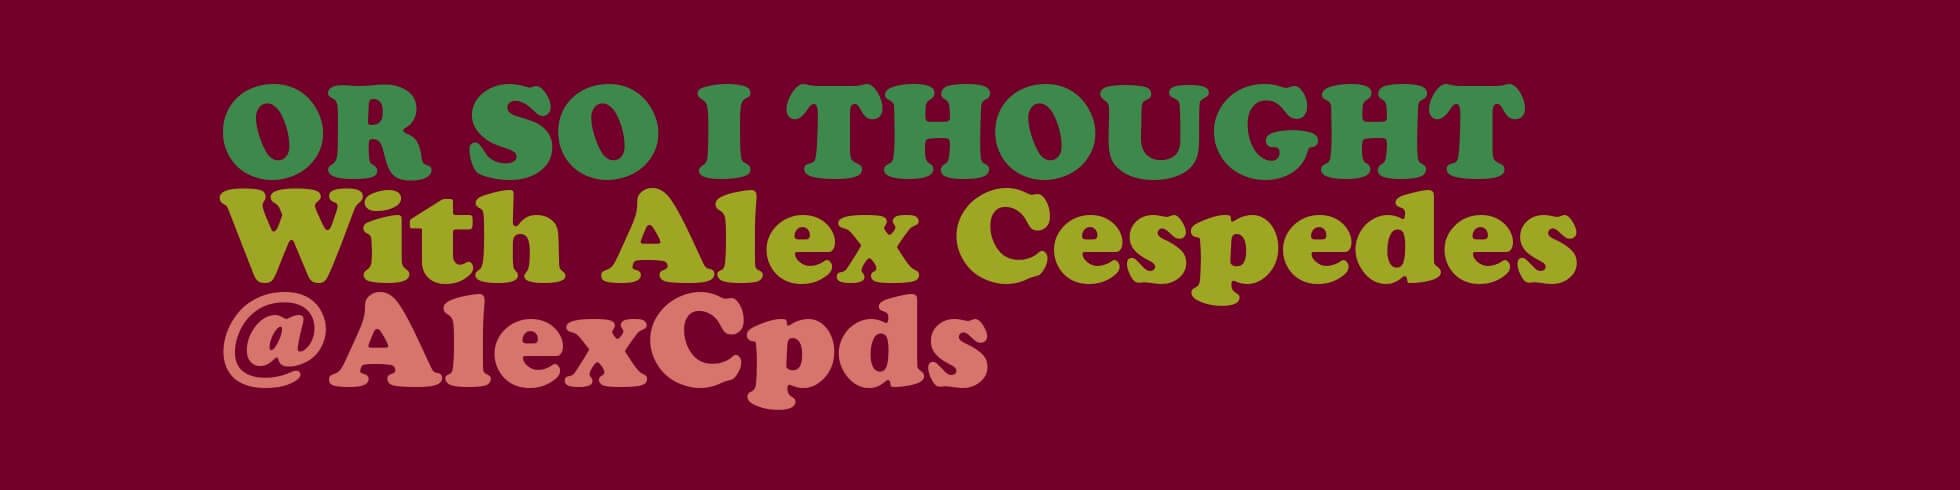 Alex Cespedes   Or So I Thought - stories of failure and growth